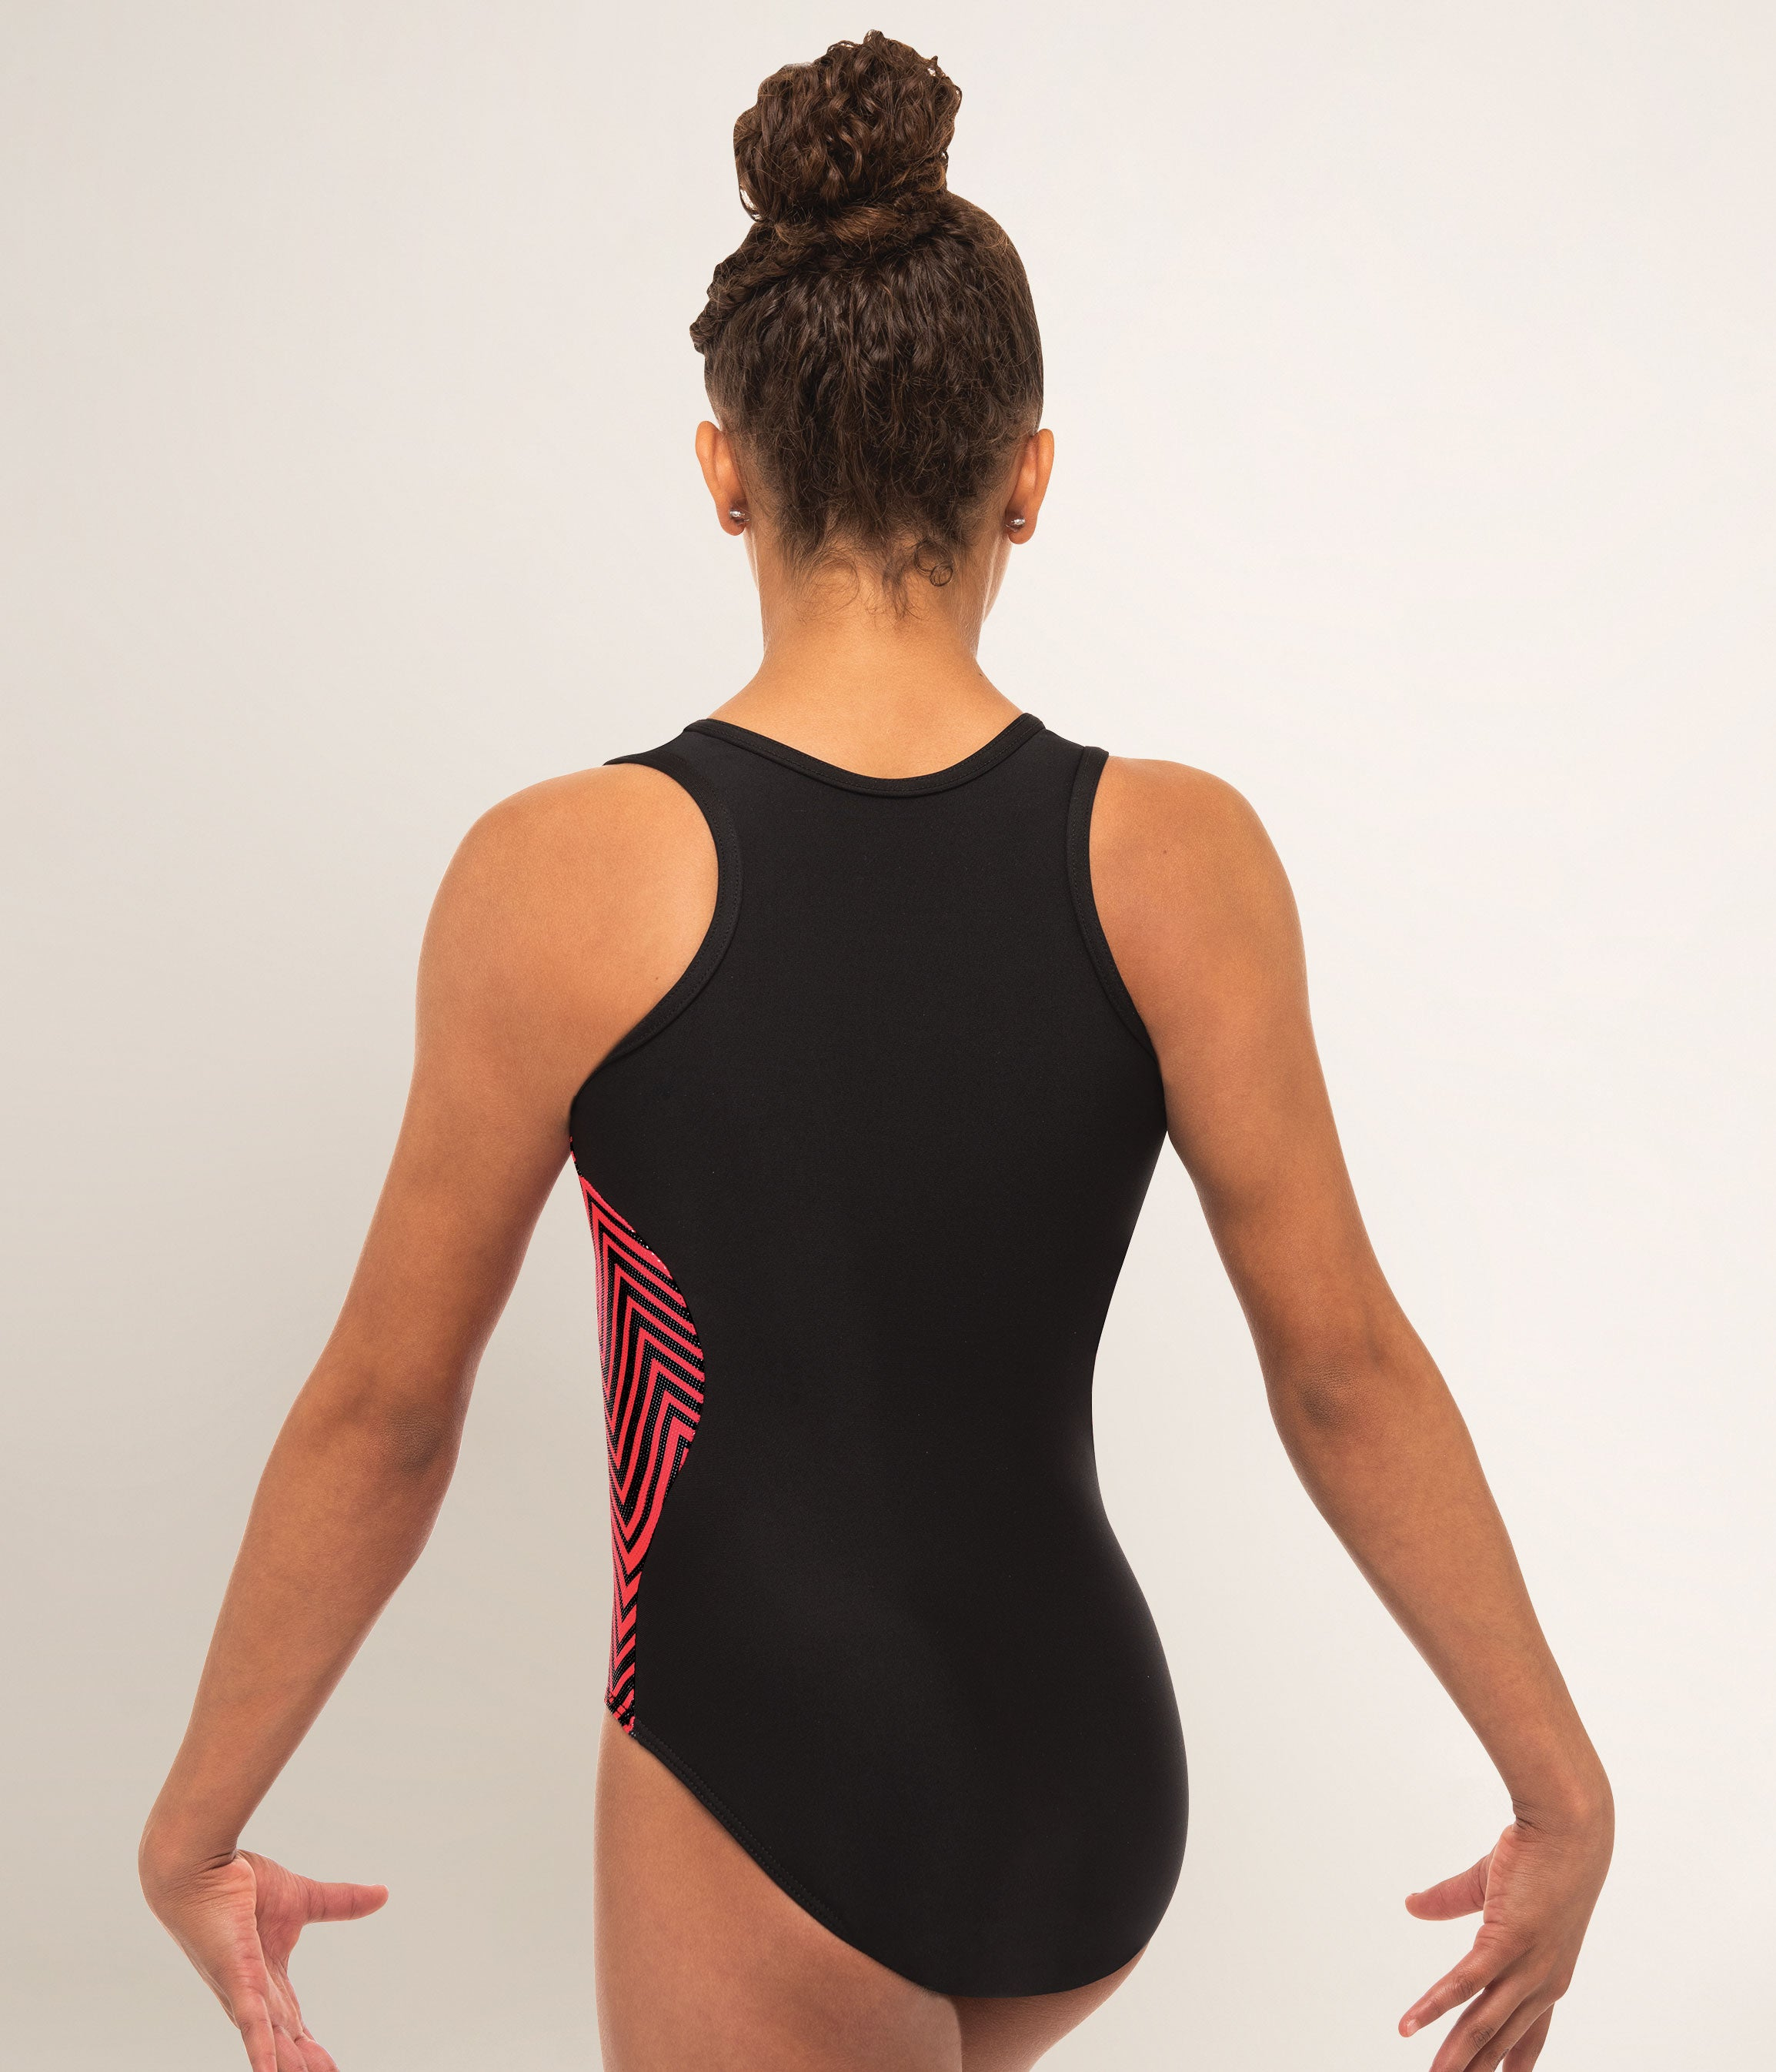 Motionwear Racerback Gymnastics Leotard - 1331